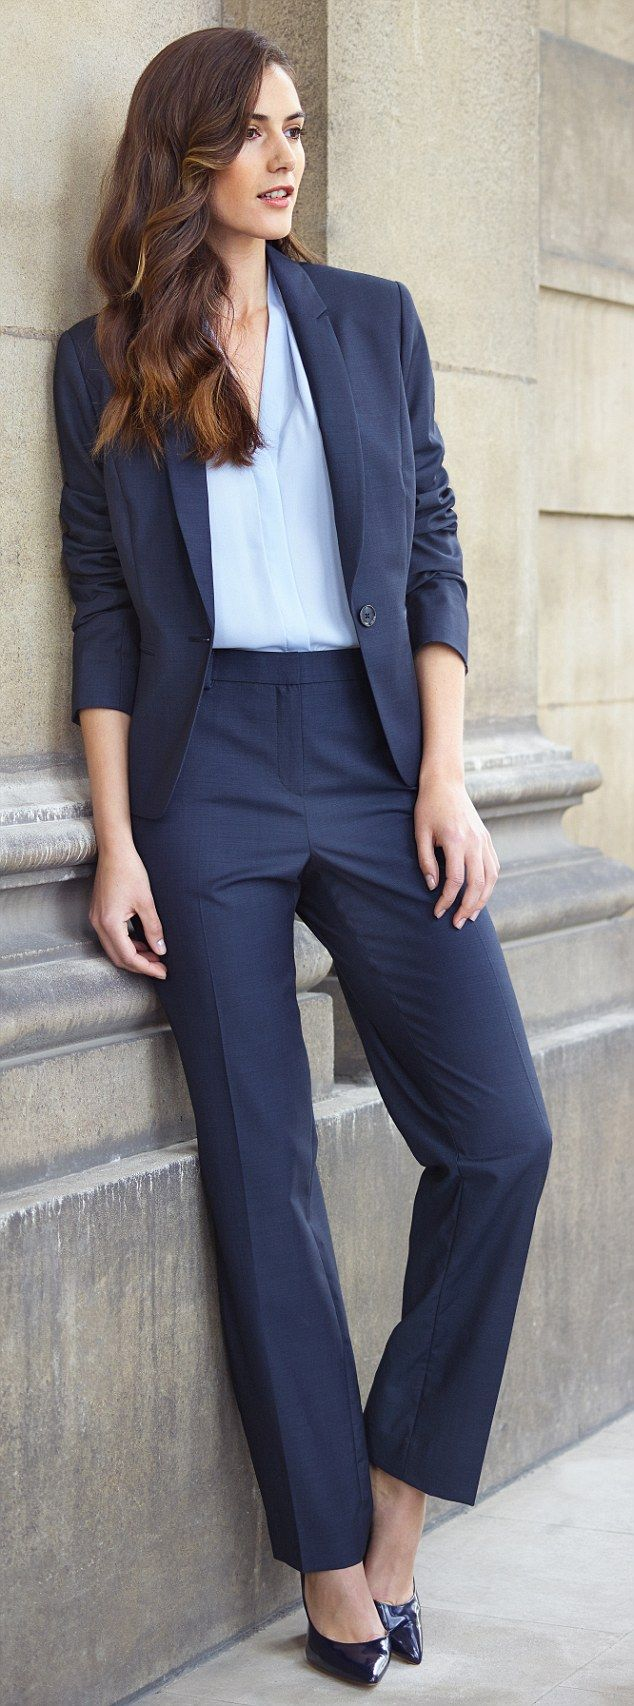 357 best Suit yourself images on Pinterest | Formal suits for ...